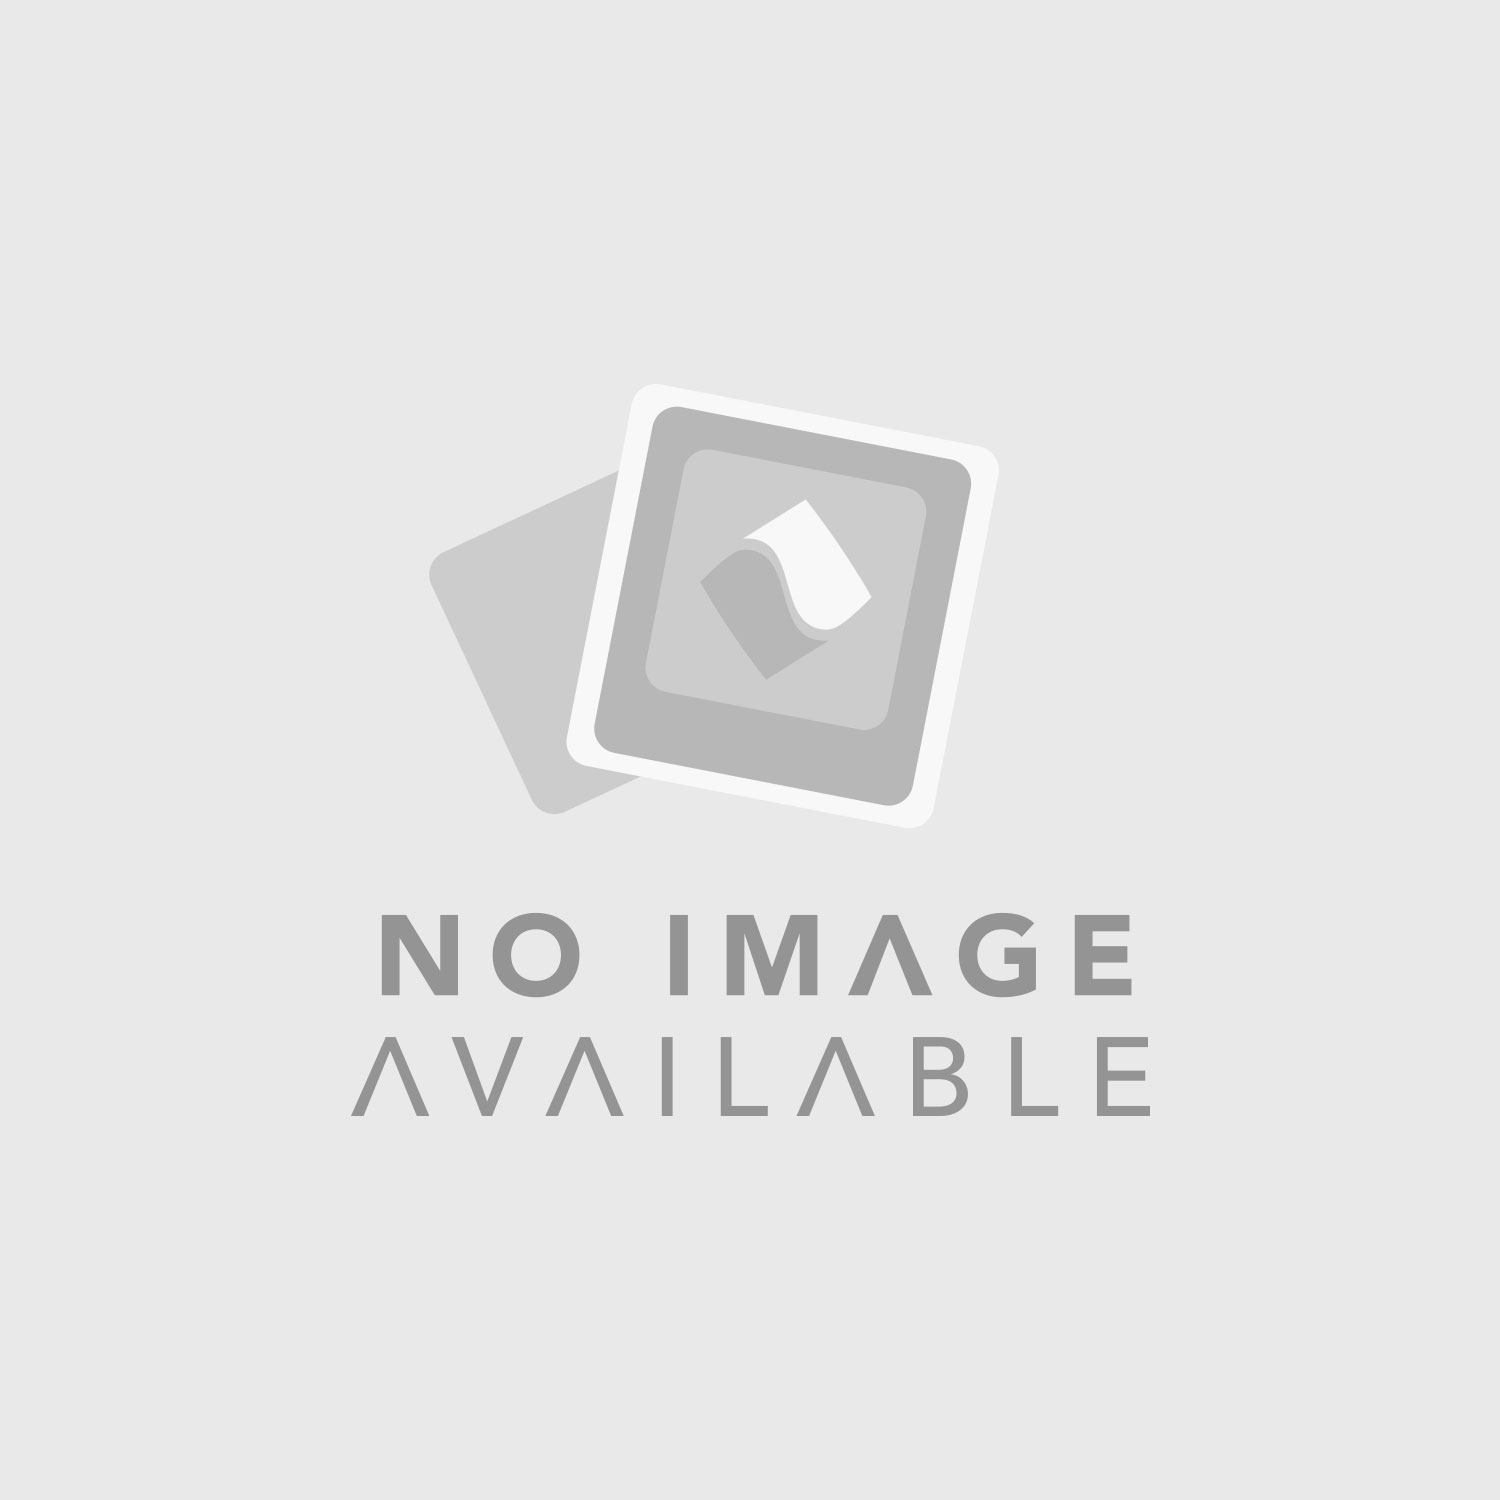 "Electro-Voice EVF-1122S 12"" 2-Way Full-Range Indoor Speaker (EVCoat-Finish, Black, 60 x 40°)"